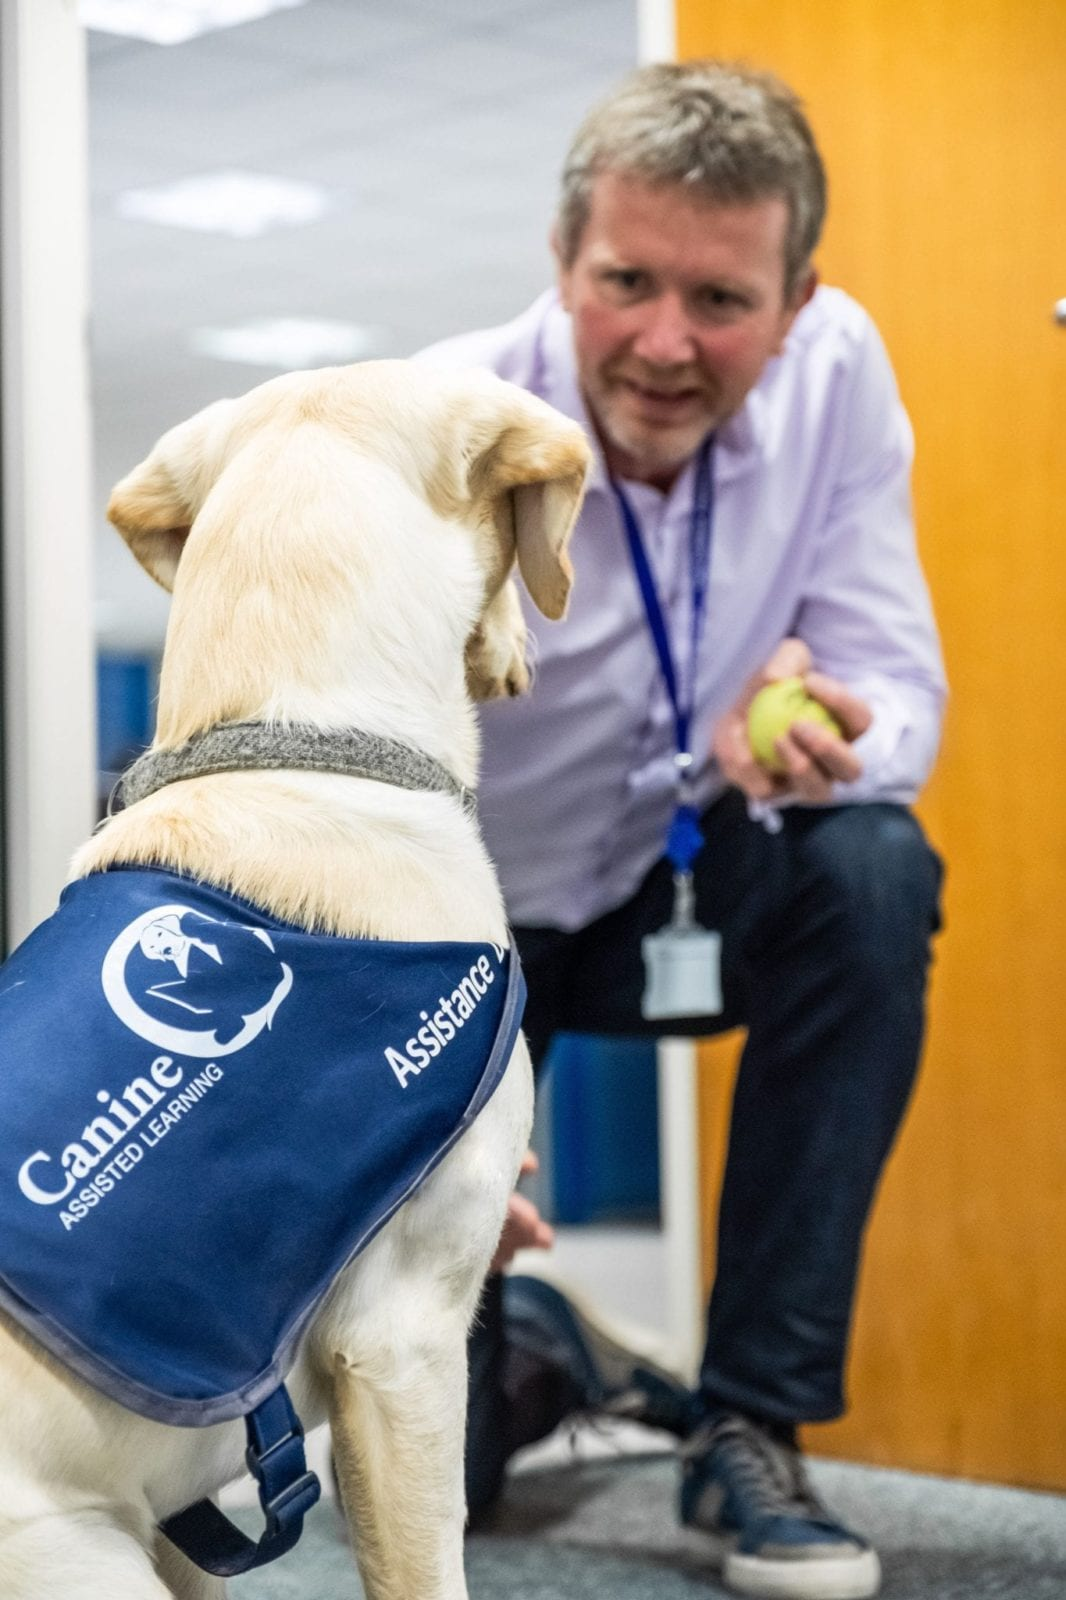 Employee with a CAL dog - www.canineassistedlearning.com